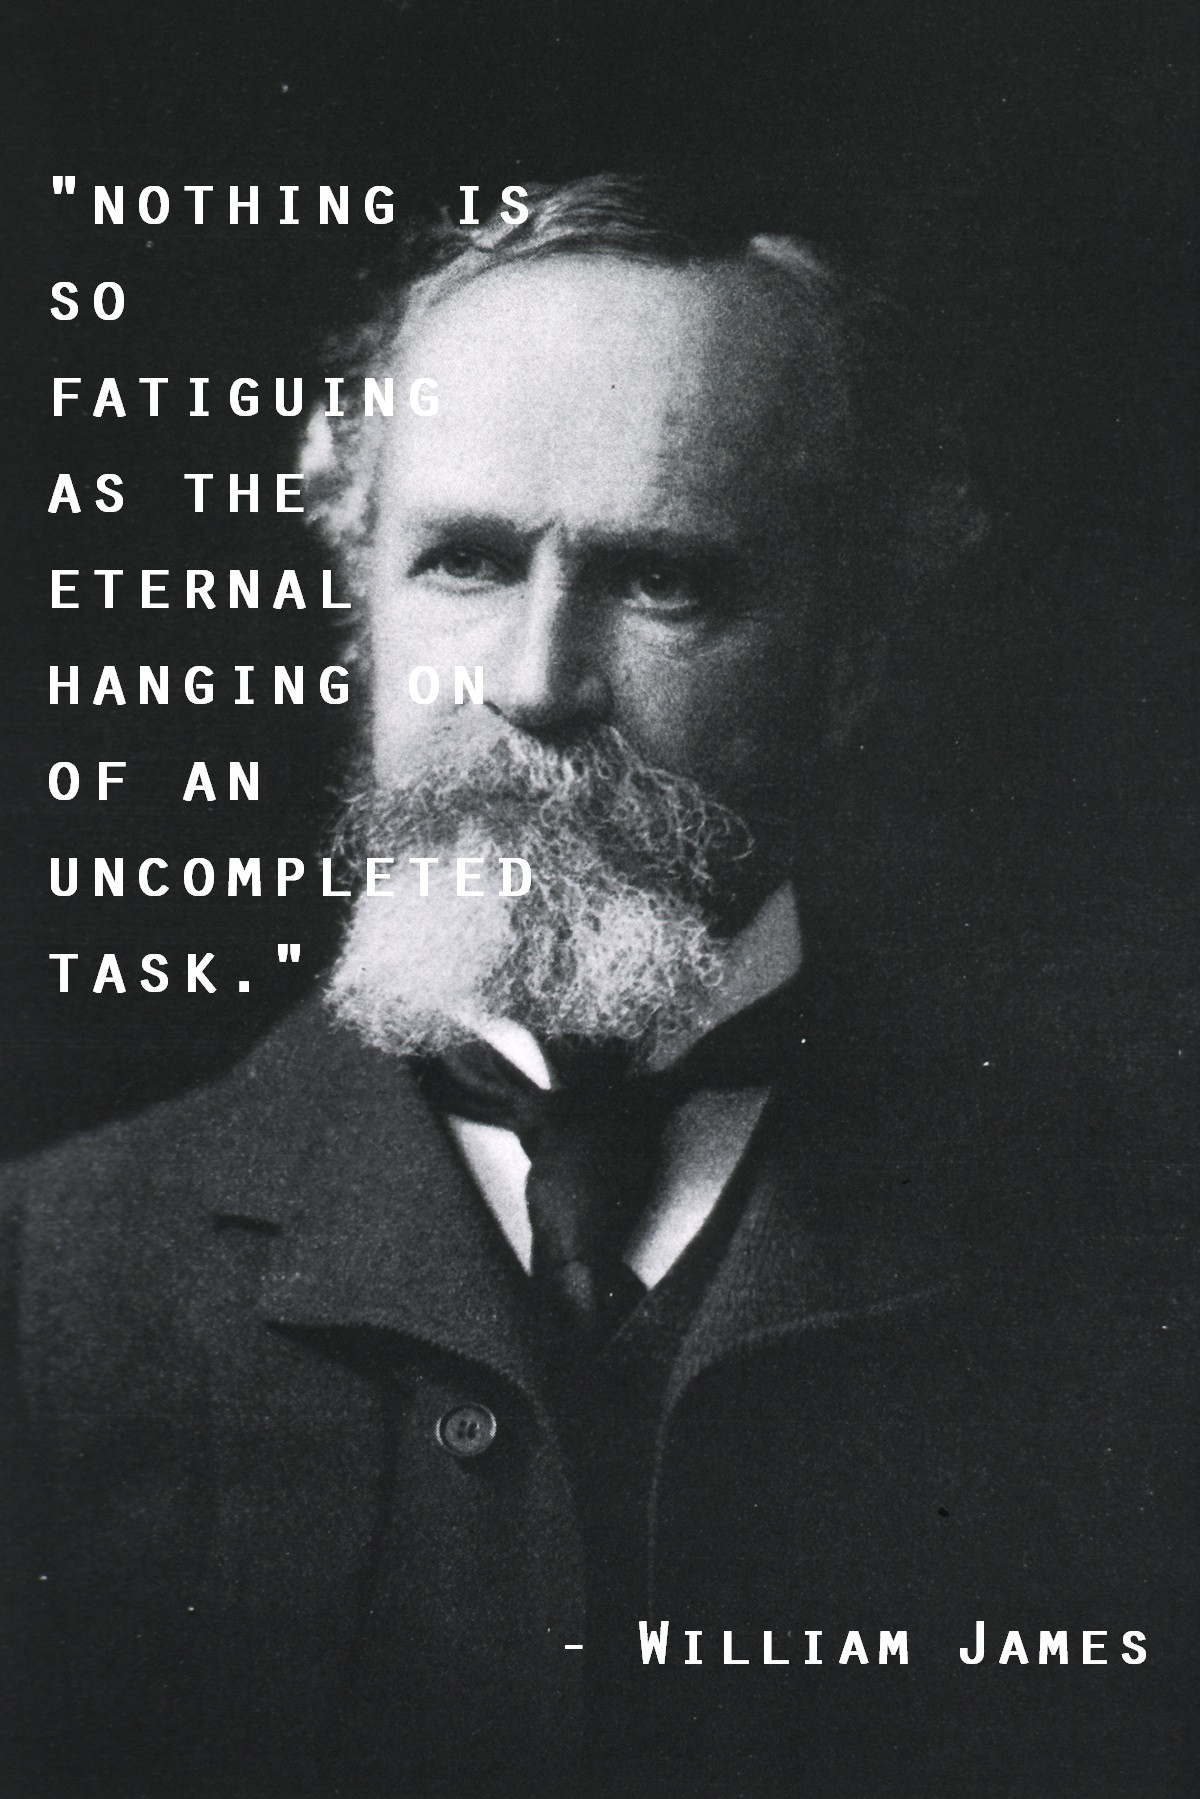 William James's quote #6